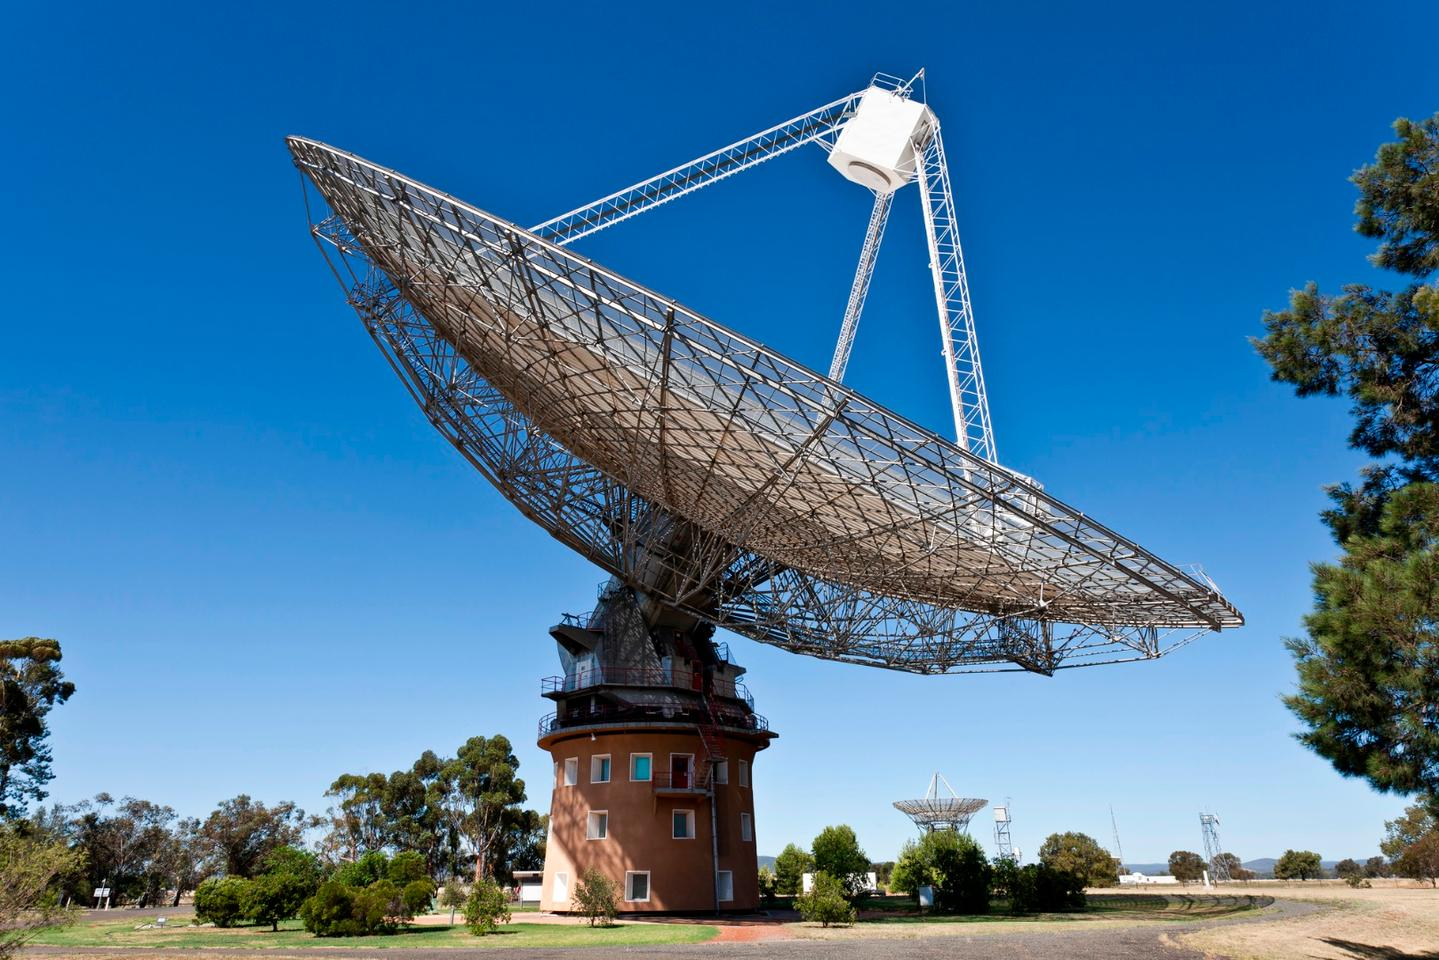 The radio telescope at the Parkes Observatory in Australia has picked up the brightest fast radio burst ever detected